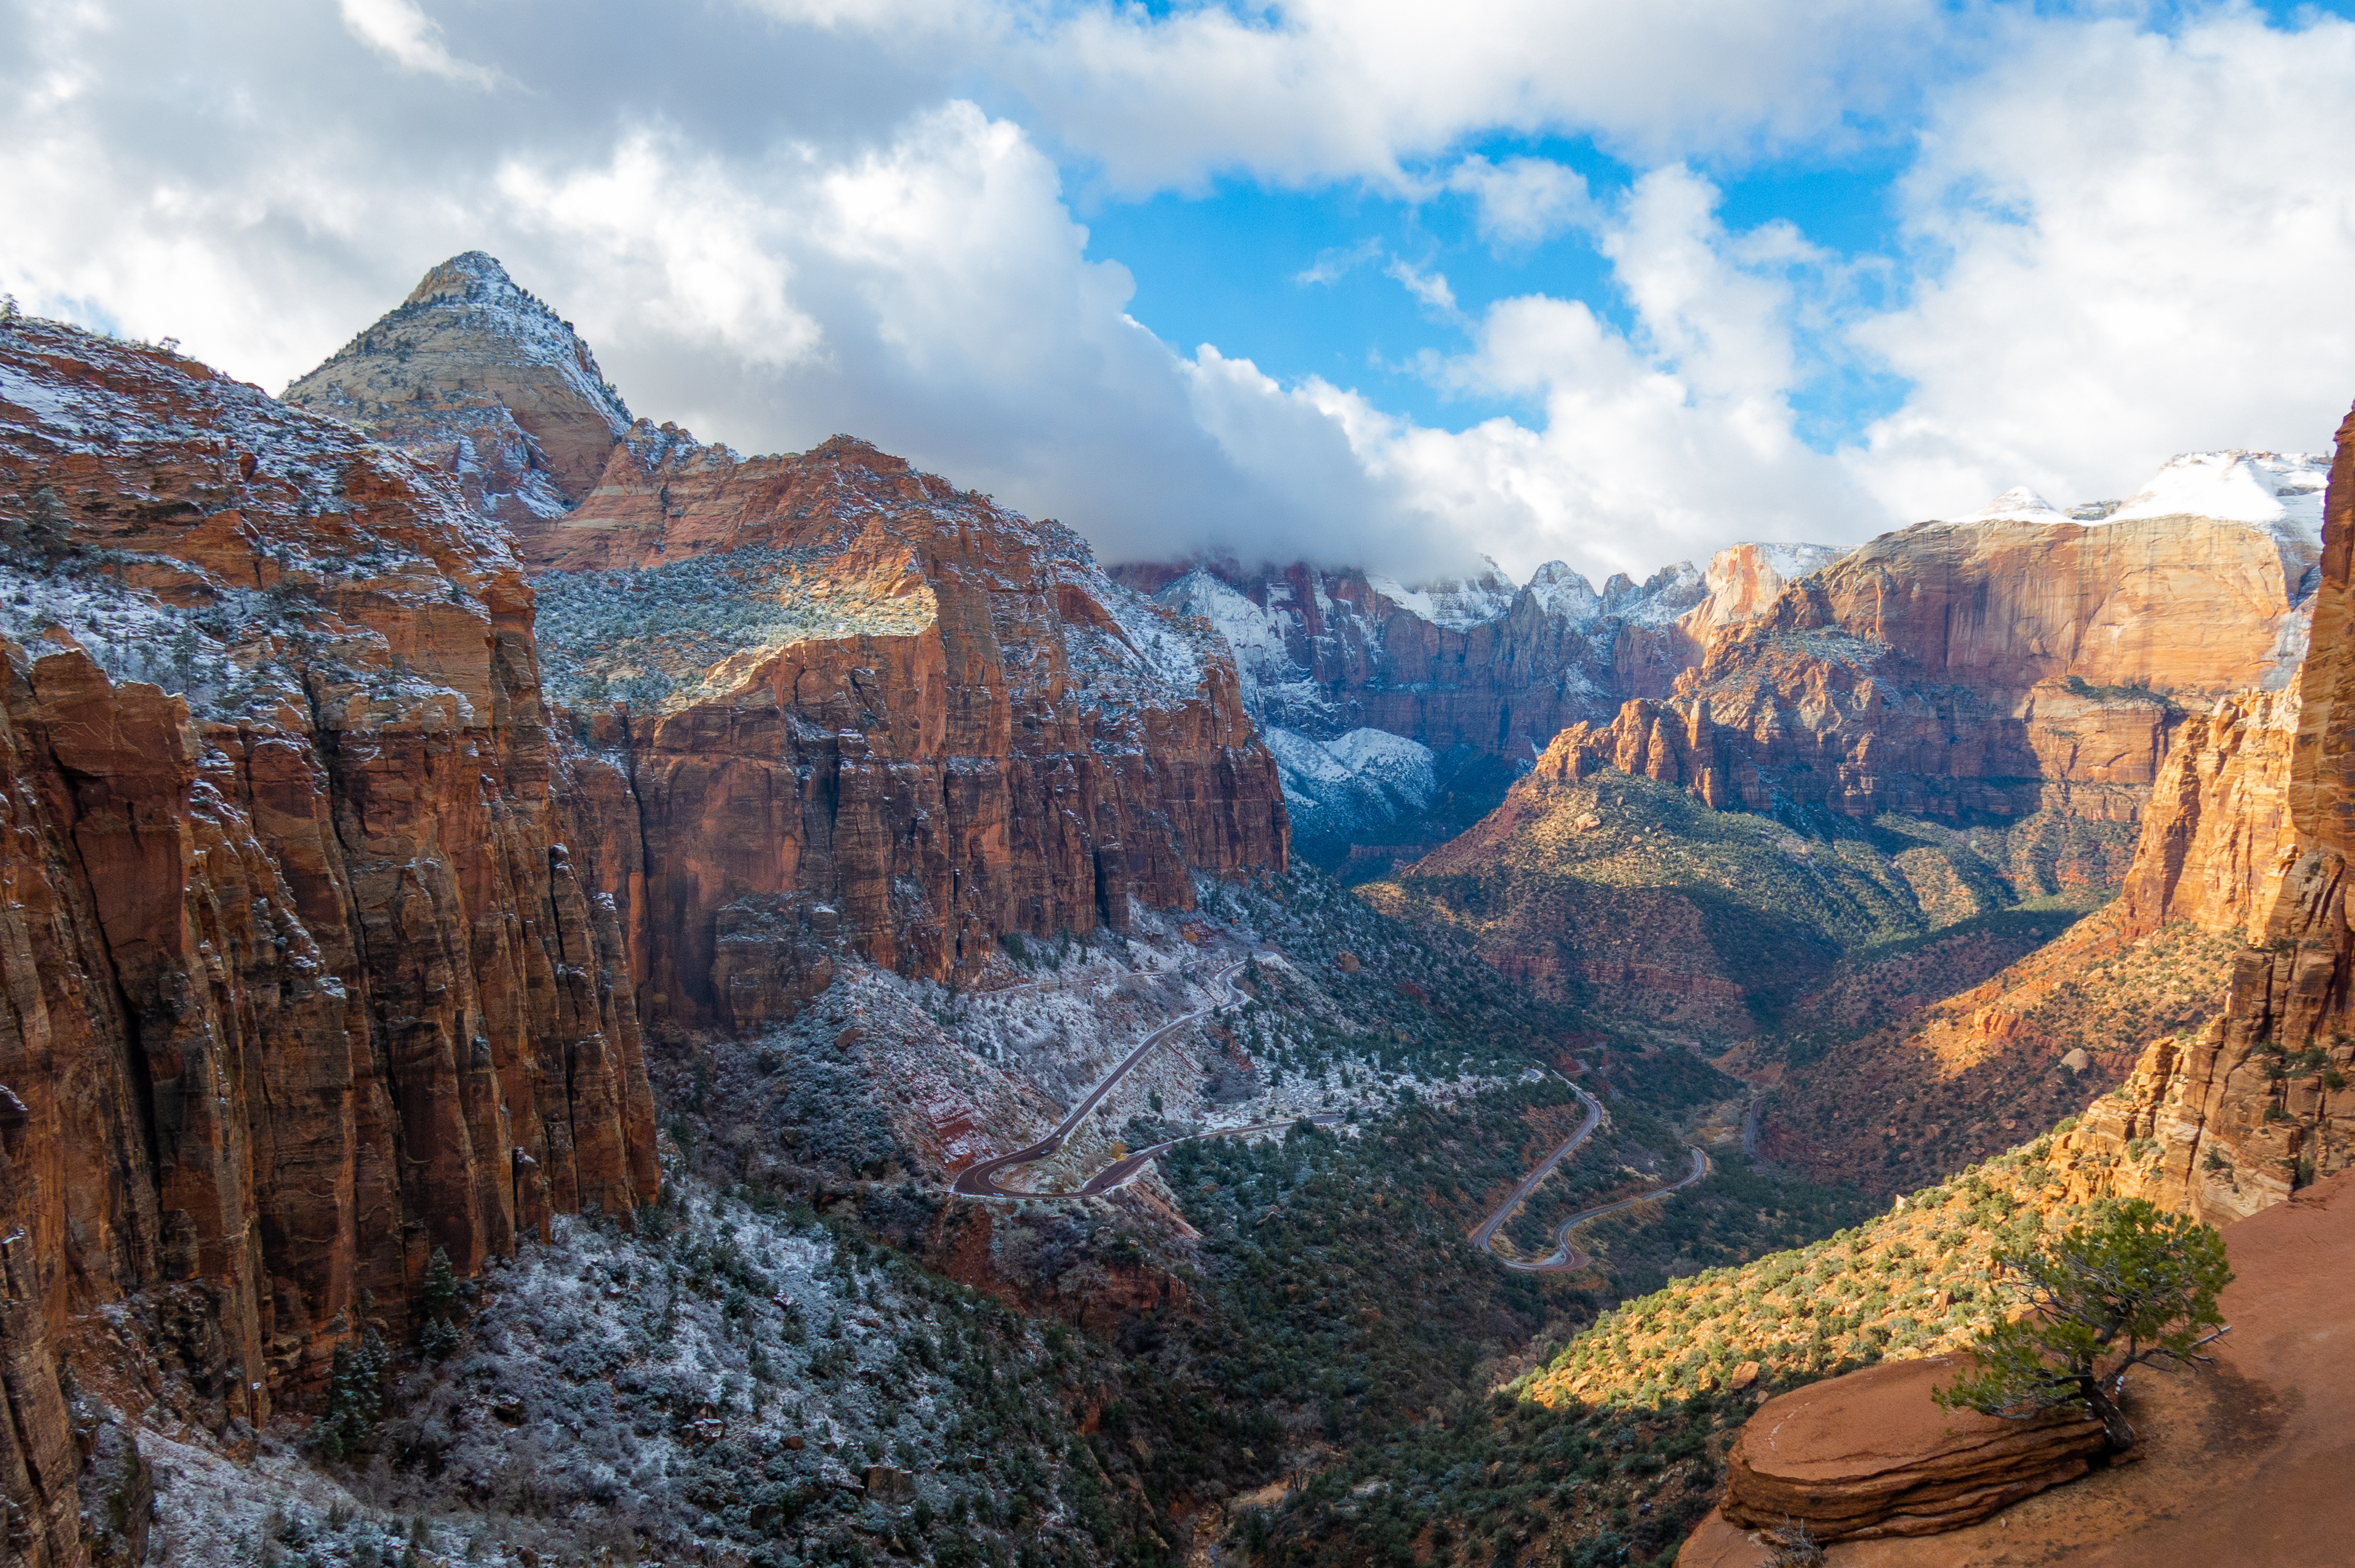 Zion Canyon Overlook, Zion National Park